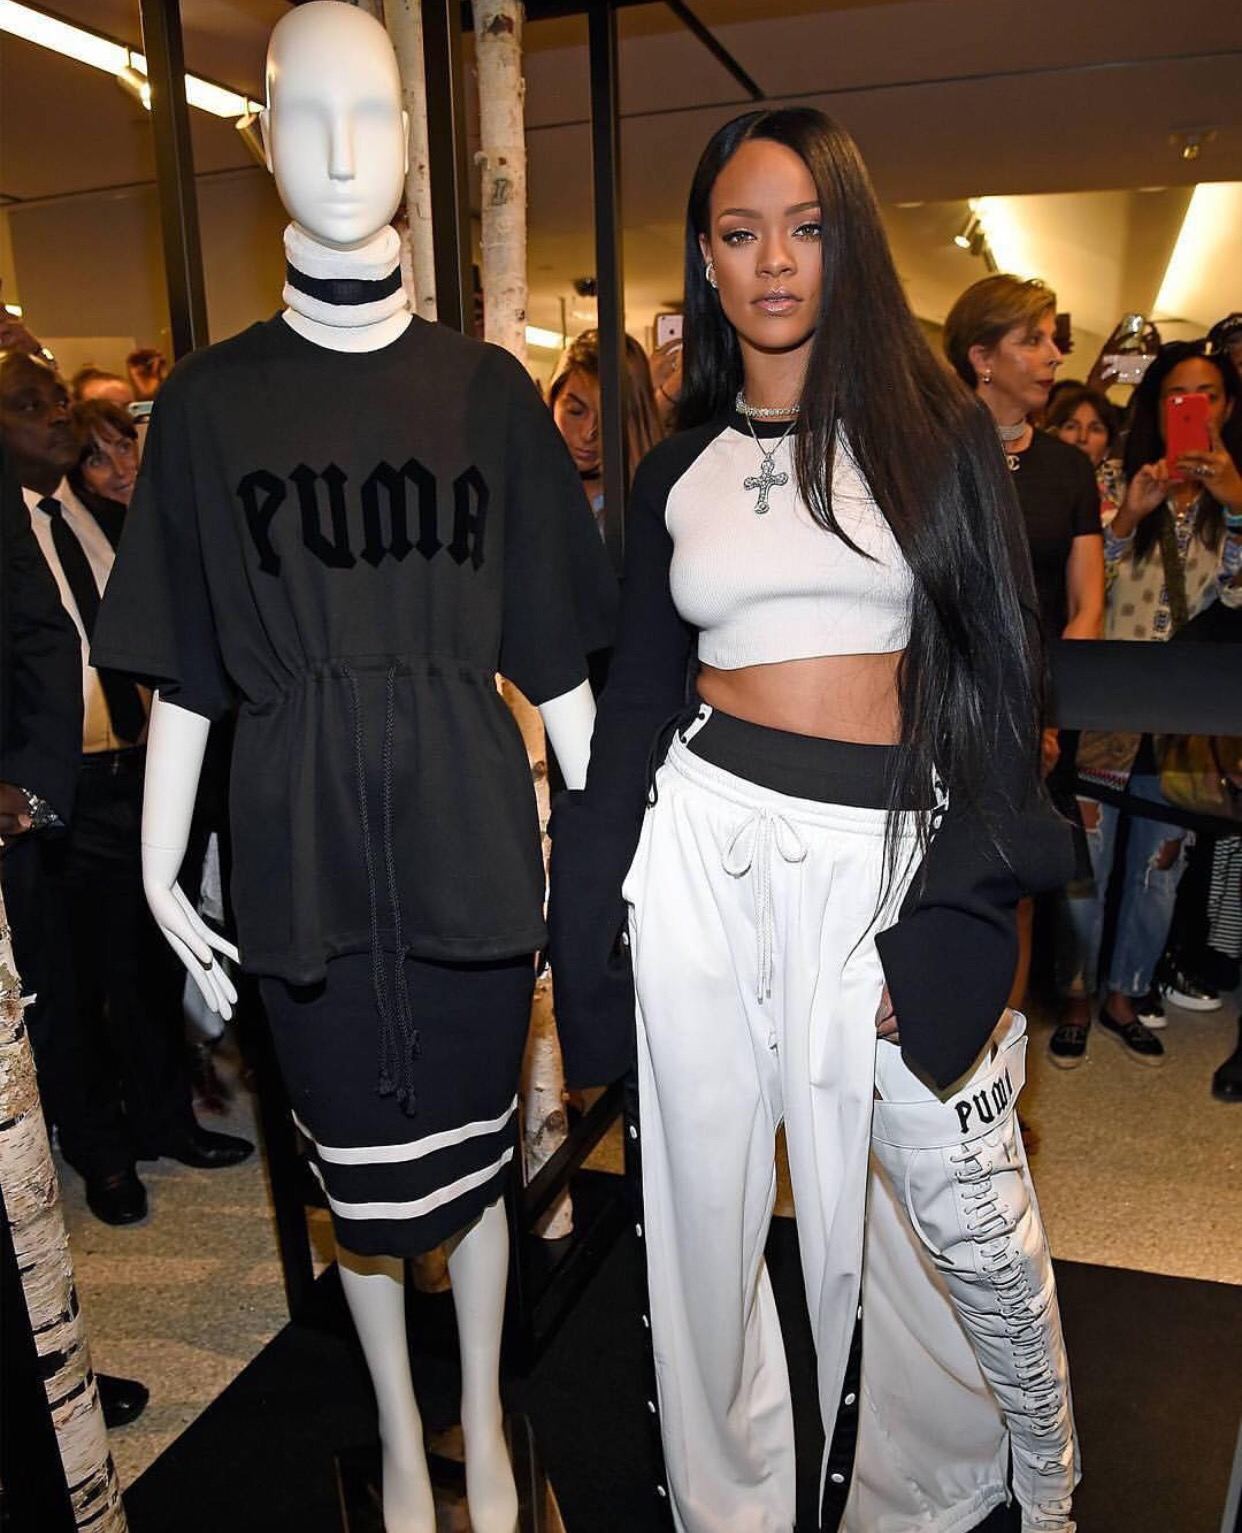 Rihanna debut The Fenty x Puma collection at Bergdorf Goodman in New York  City on Sept 6 52f4d87a2b12